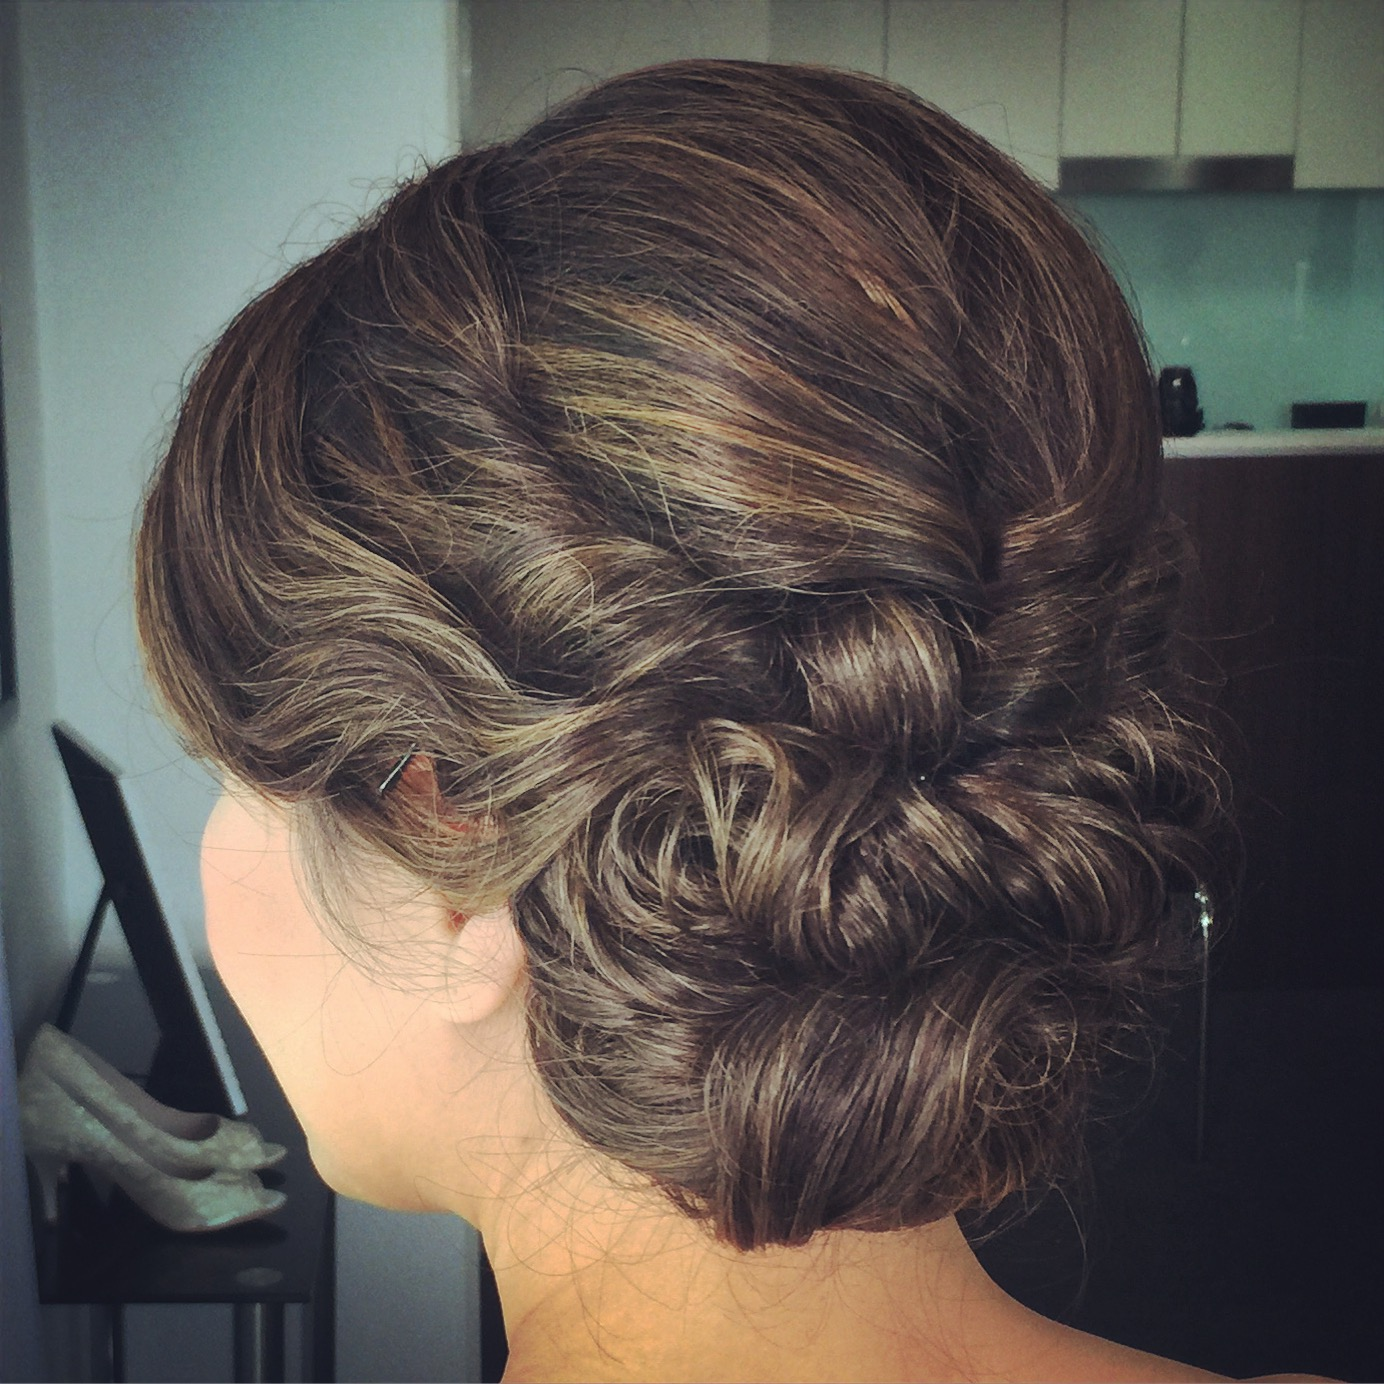 Brisbane Asian wedding hairstyle